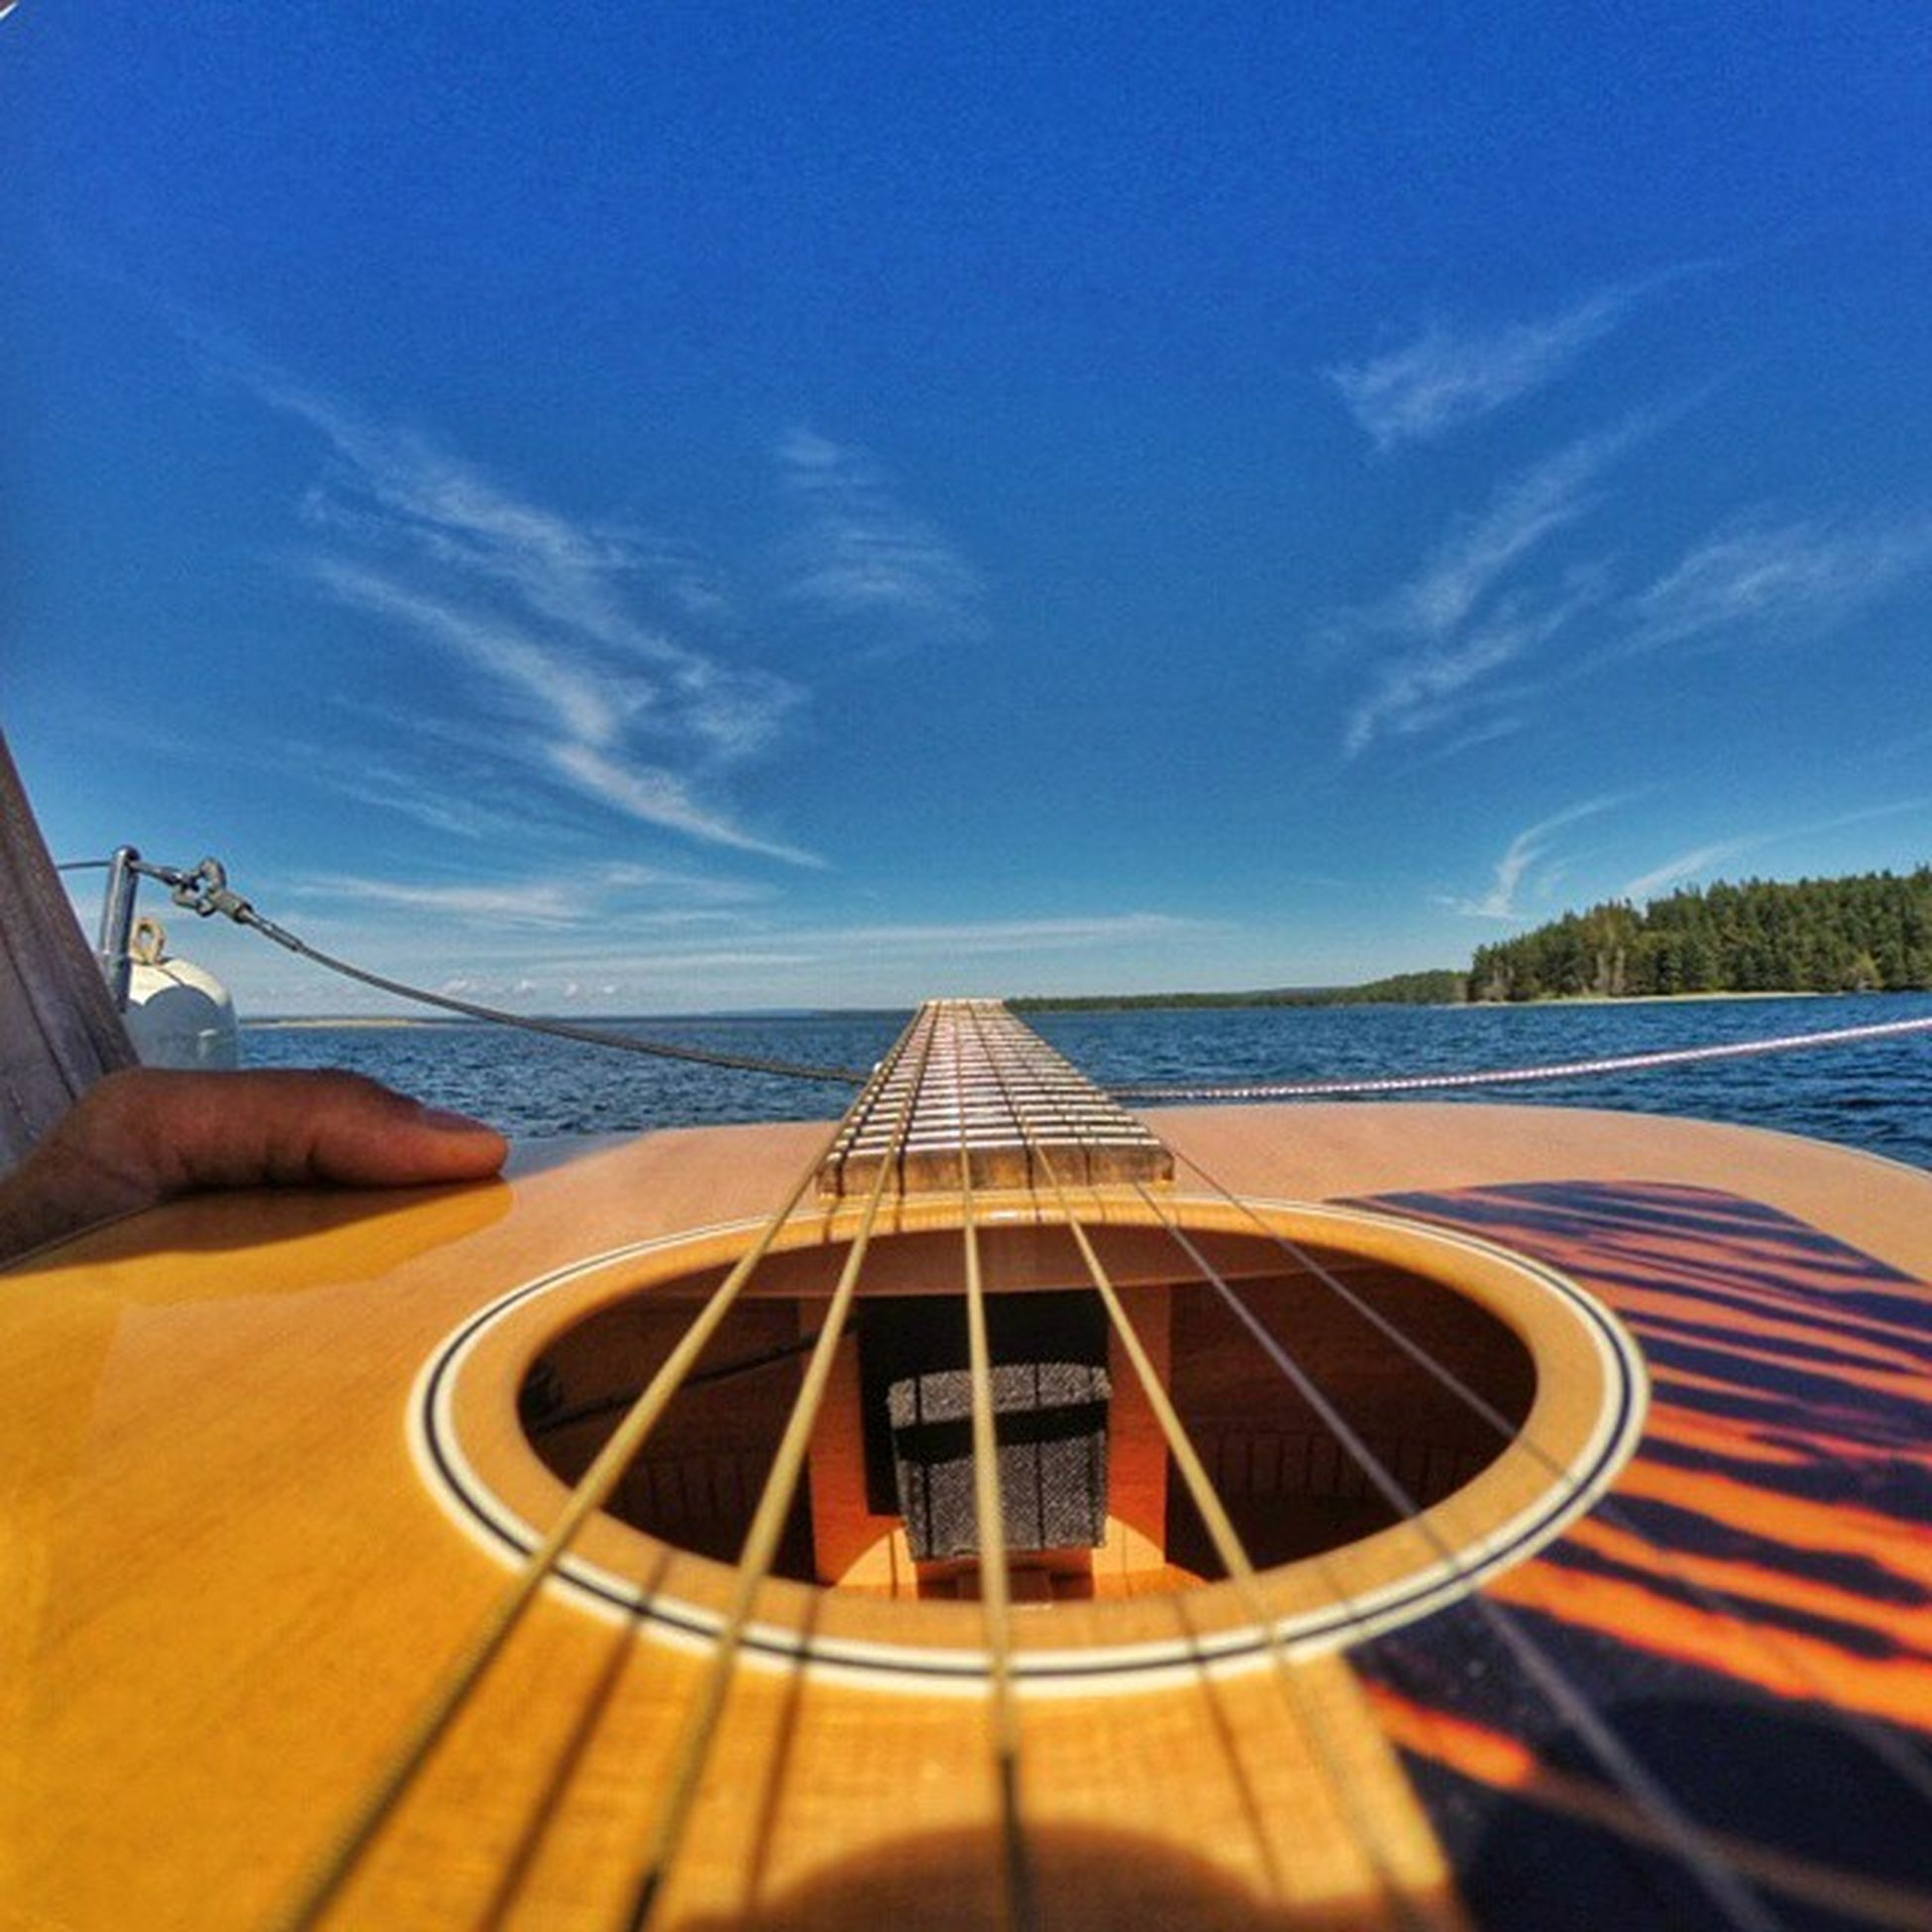 Bridge to Music • GibsonView Shot this on my Cape Breton Sailing trip with Greg on The Misty Cat. We lucked out with the weather and spent a beautiful afternoon on Lake bras d'Or. Will write the story down next. • TstGuitar with @gibsonguitar • TstGoPro with @gopro • Tstcanada with @explorecanada & @visitnovascotia • ExploreCanada VisitNovaScotia Gibson GoPro • Travel Canada NovaScotia CapeBreton Sailing •